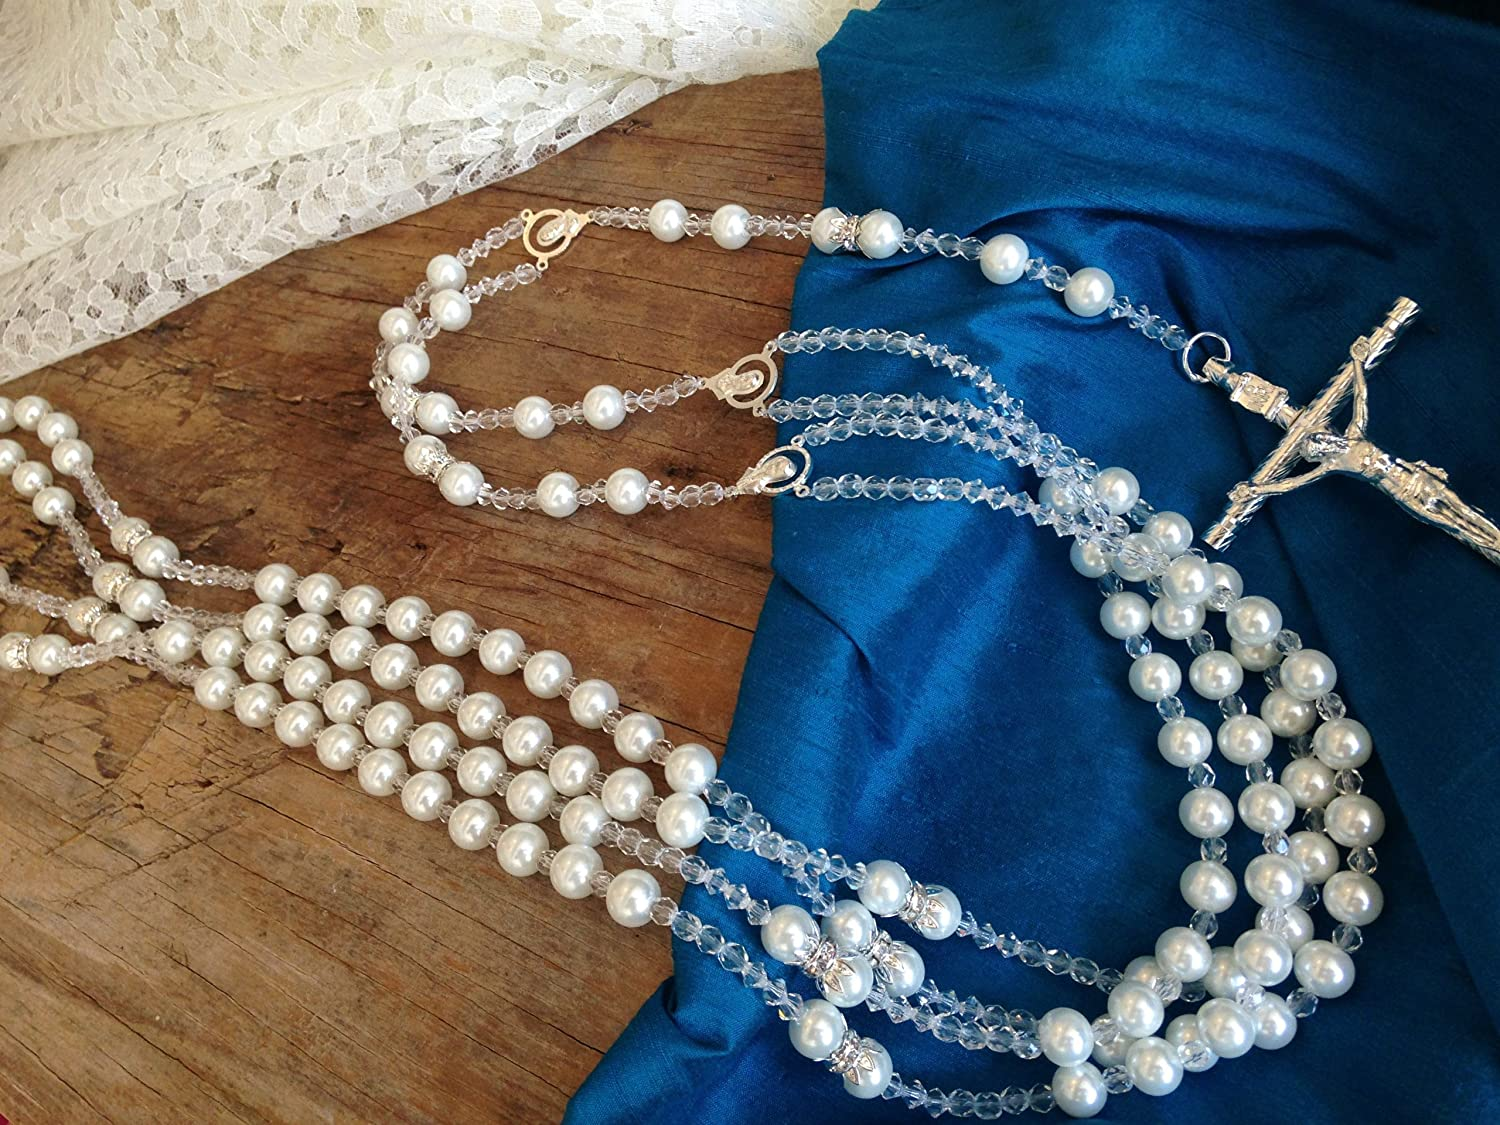 Amazon.com : White Pearls Wedding Lasso/Crystal Pearls Wedding Rosary/Lazo De Boda Perlas Blancas : Wedding Ceremony Accessories : Everything Else